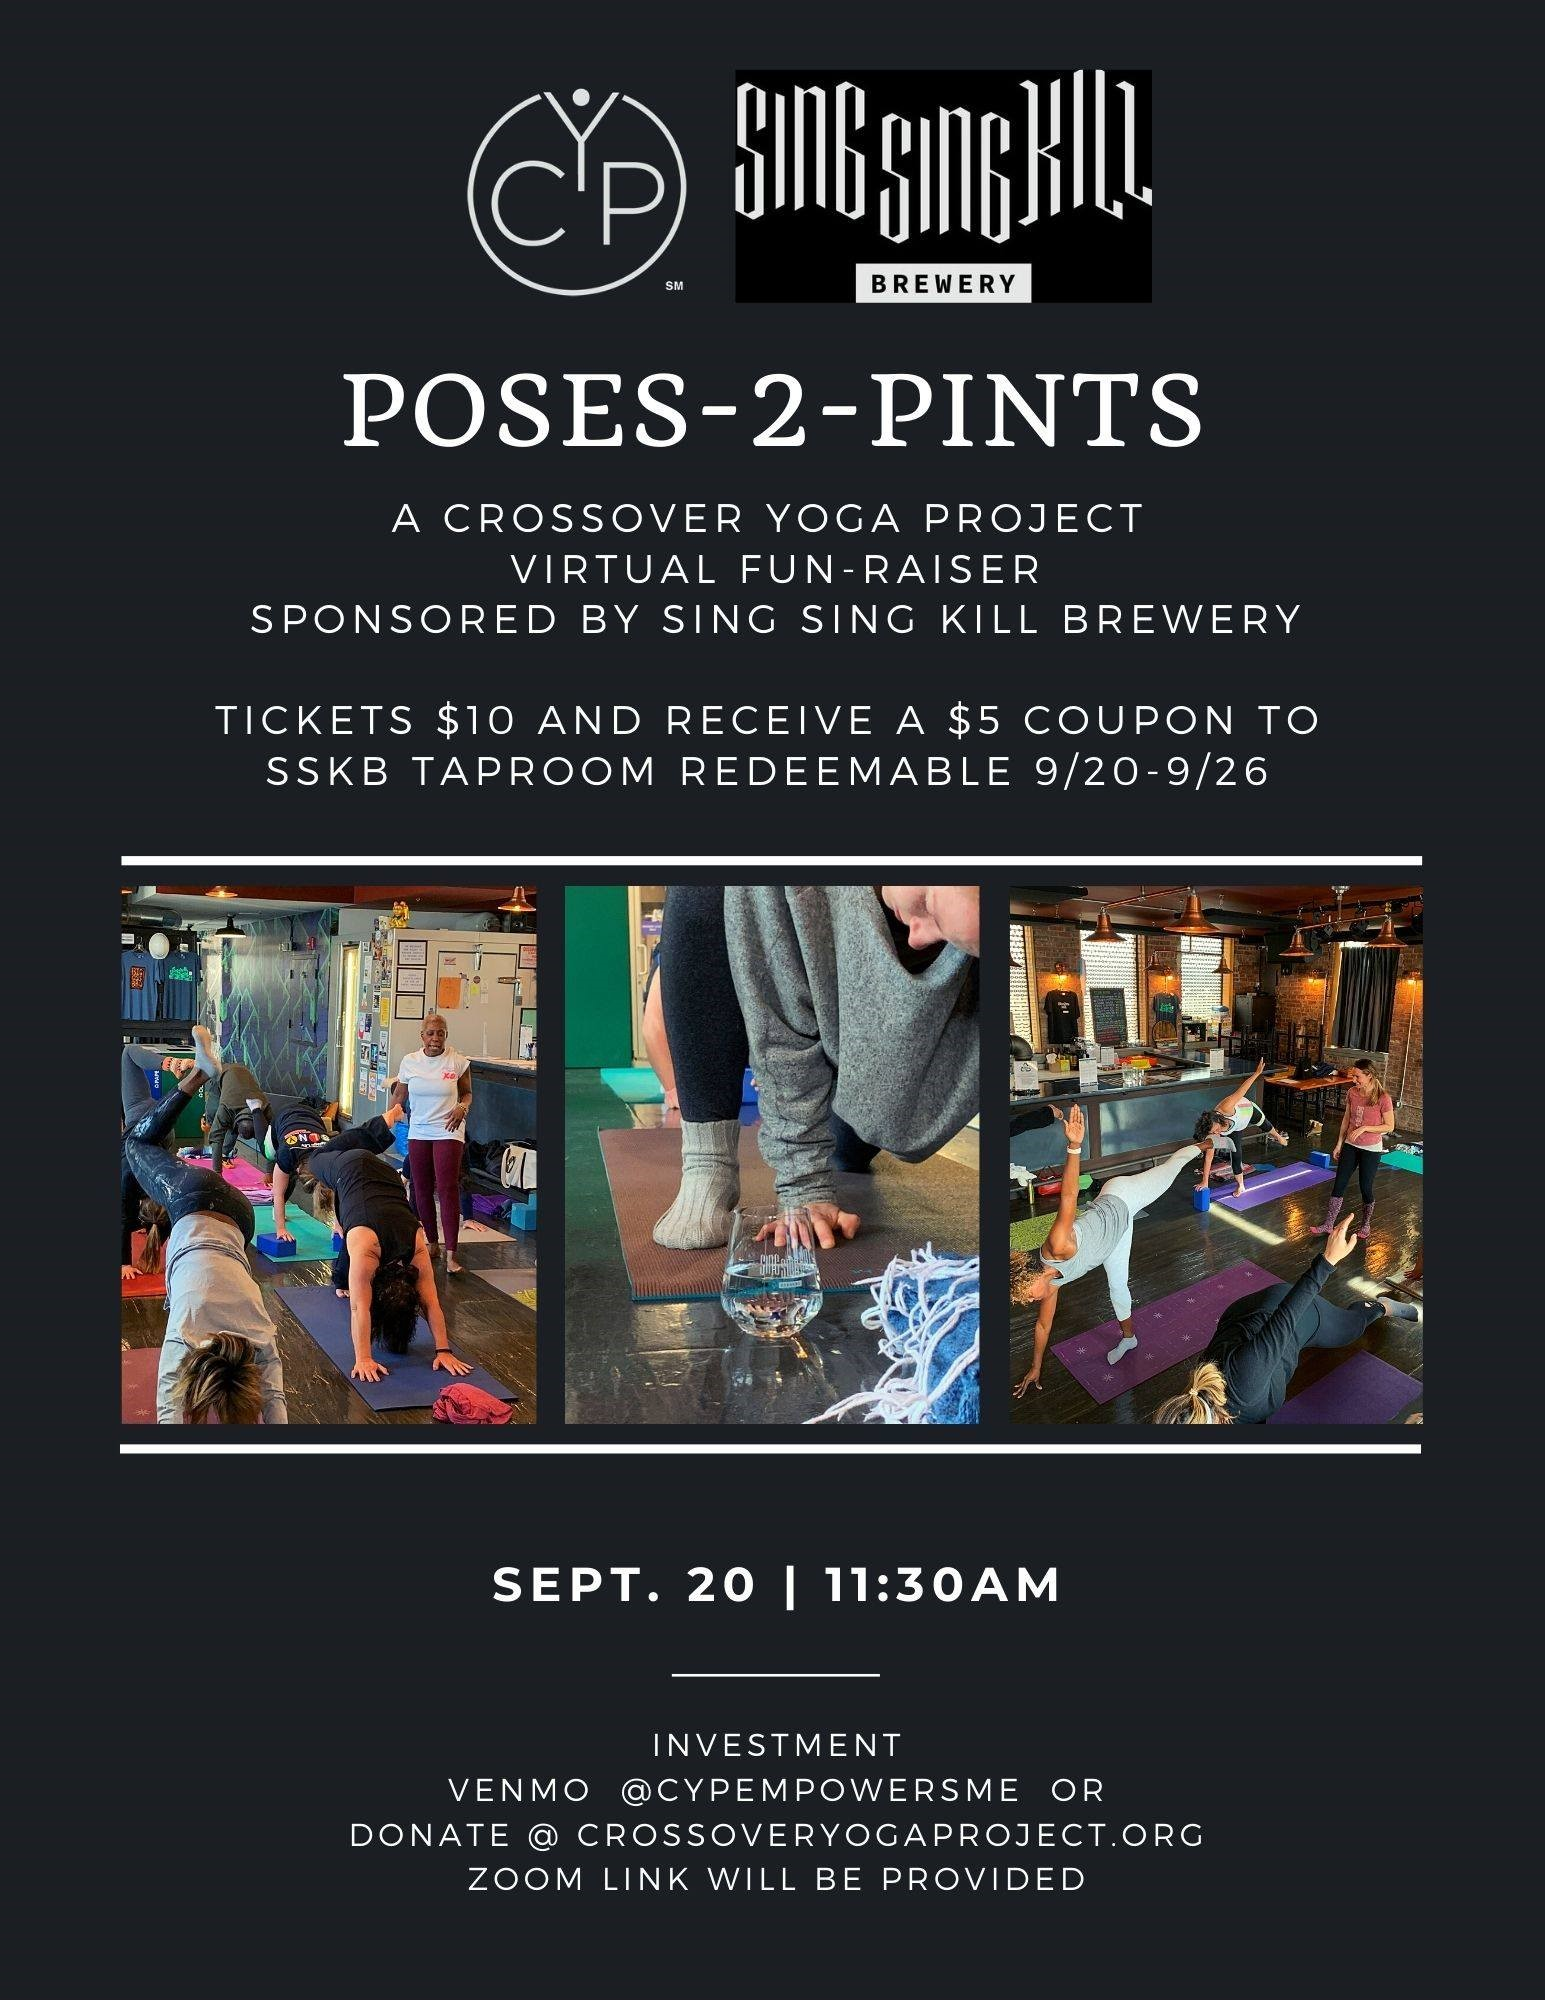 Pints to Poses